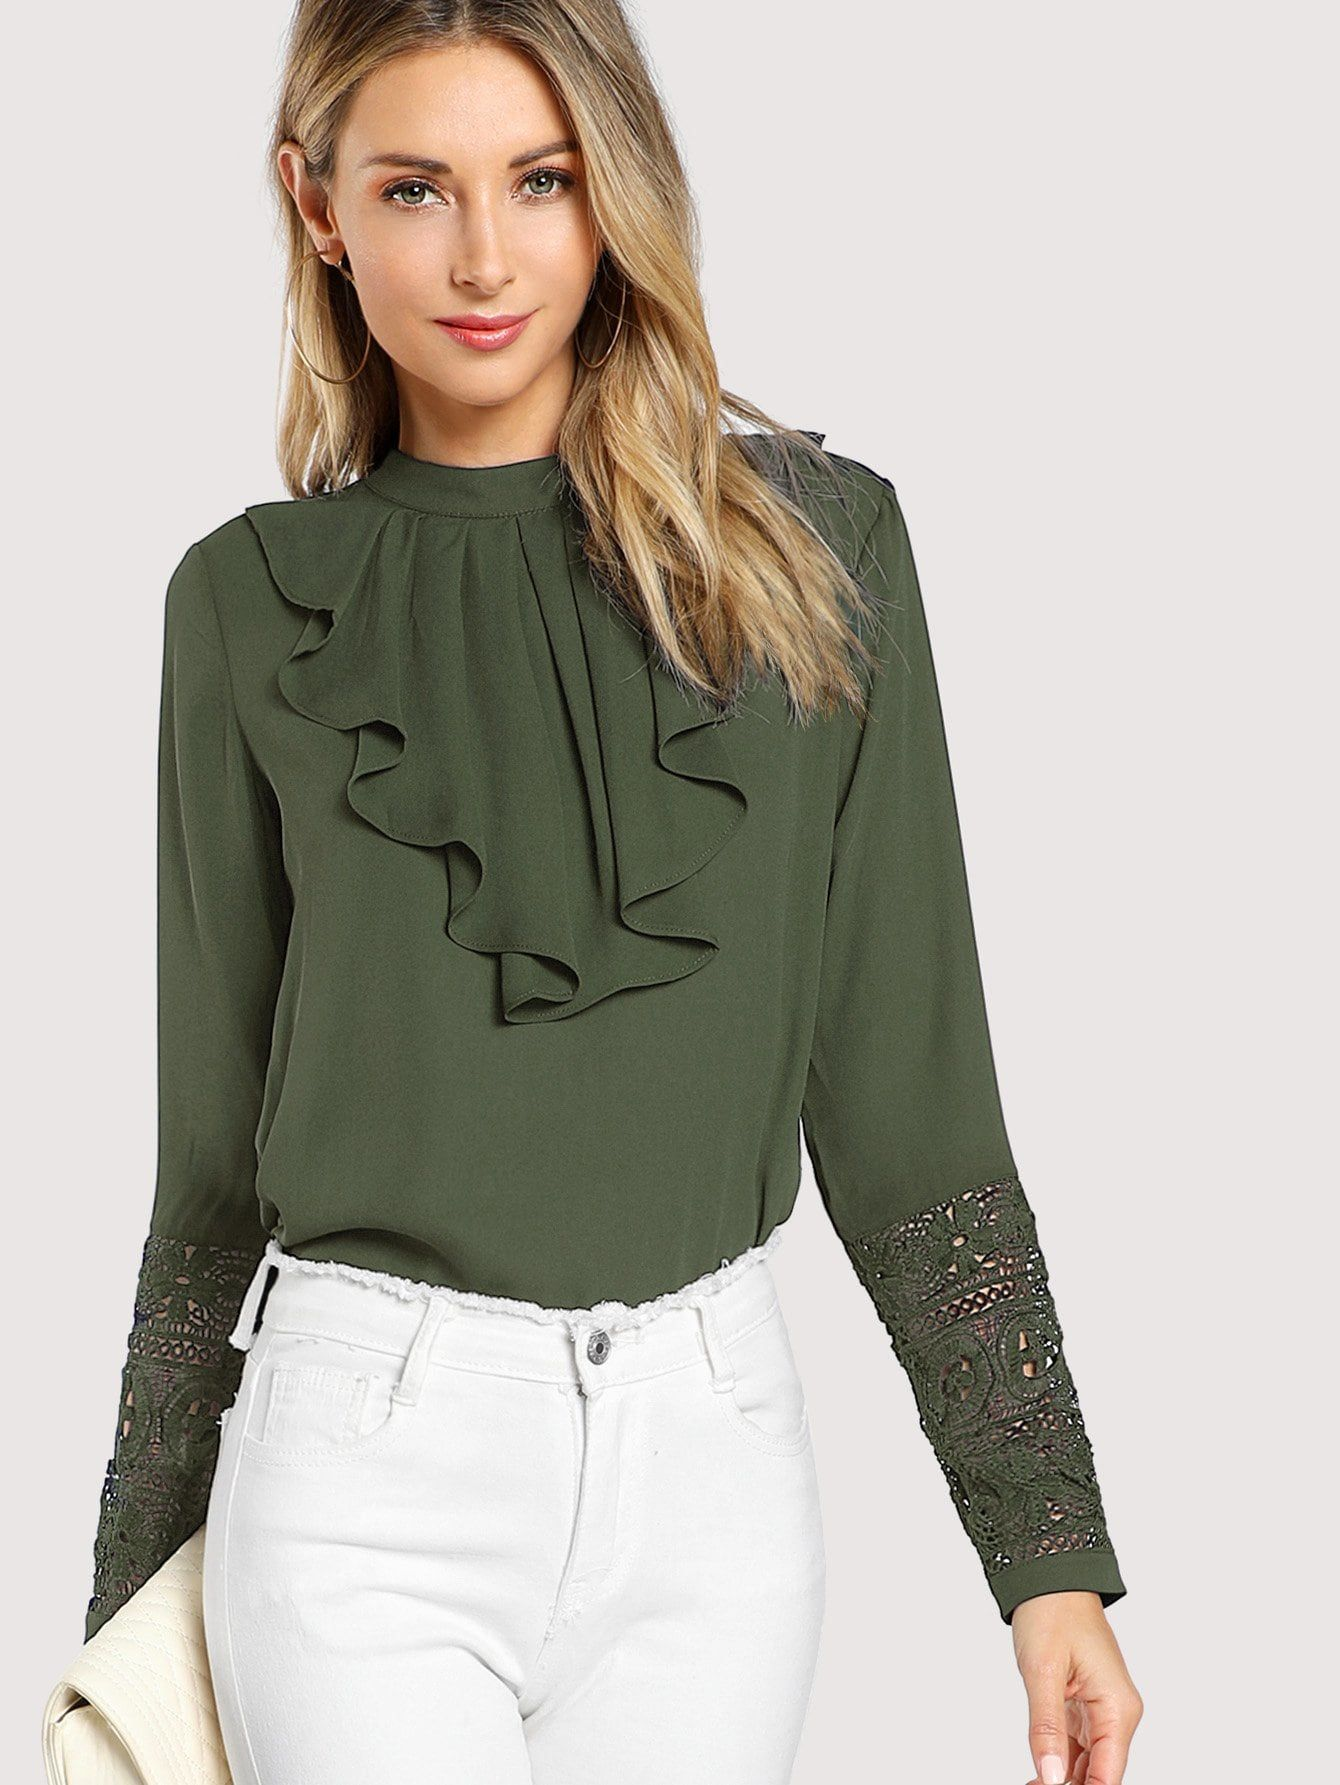 1f9ecb7638e853 Flounce Neck Lace Cuff Top Neck#Flounce#Lace. Classy and Elegant Plain Top  Regular Fit Stand Collar Long Sleeve Army Green Regular Length Flounce